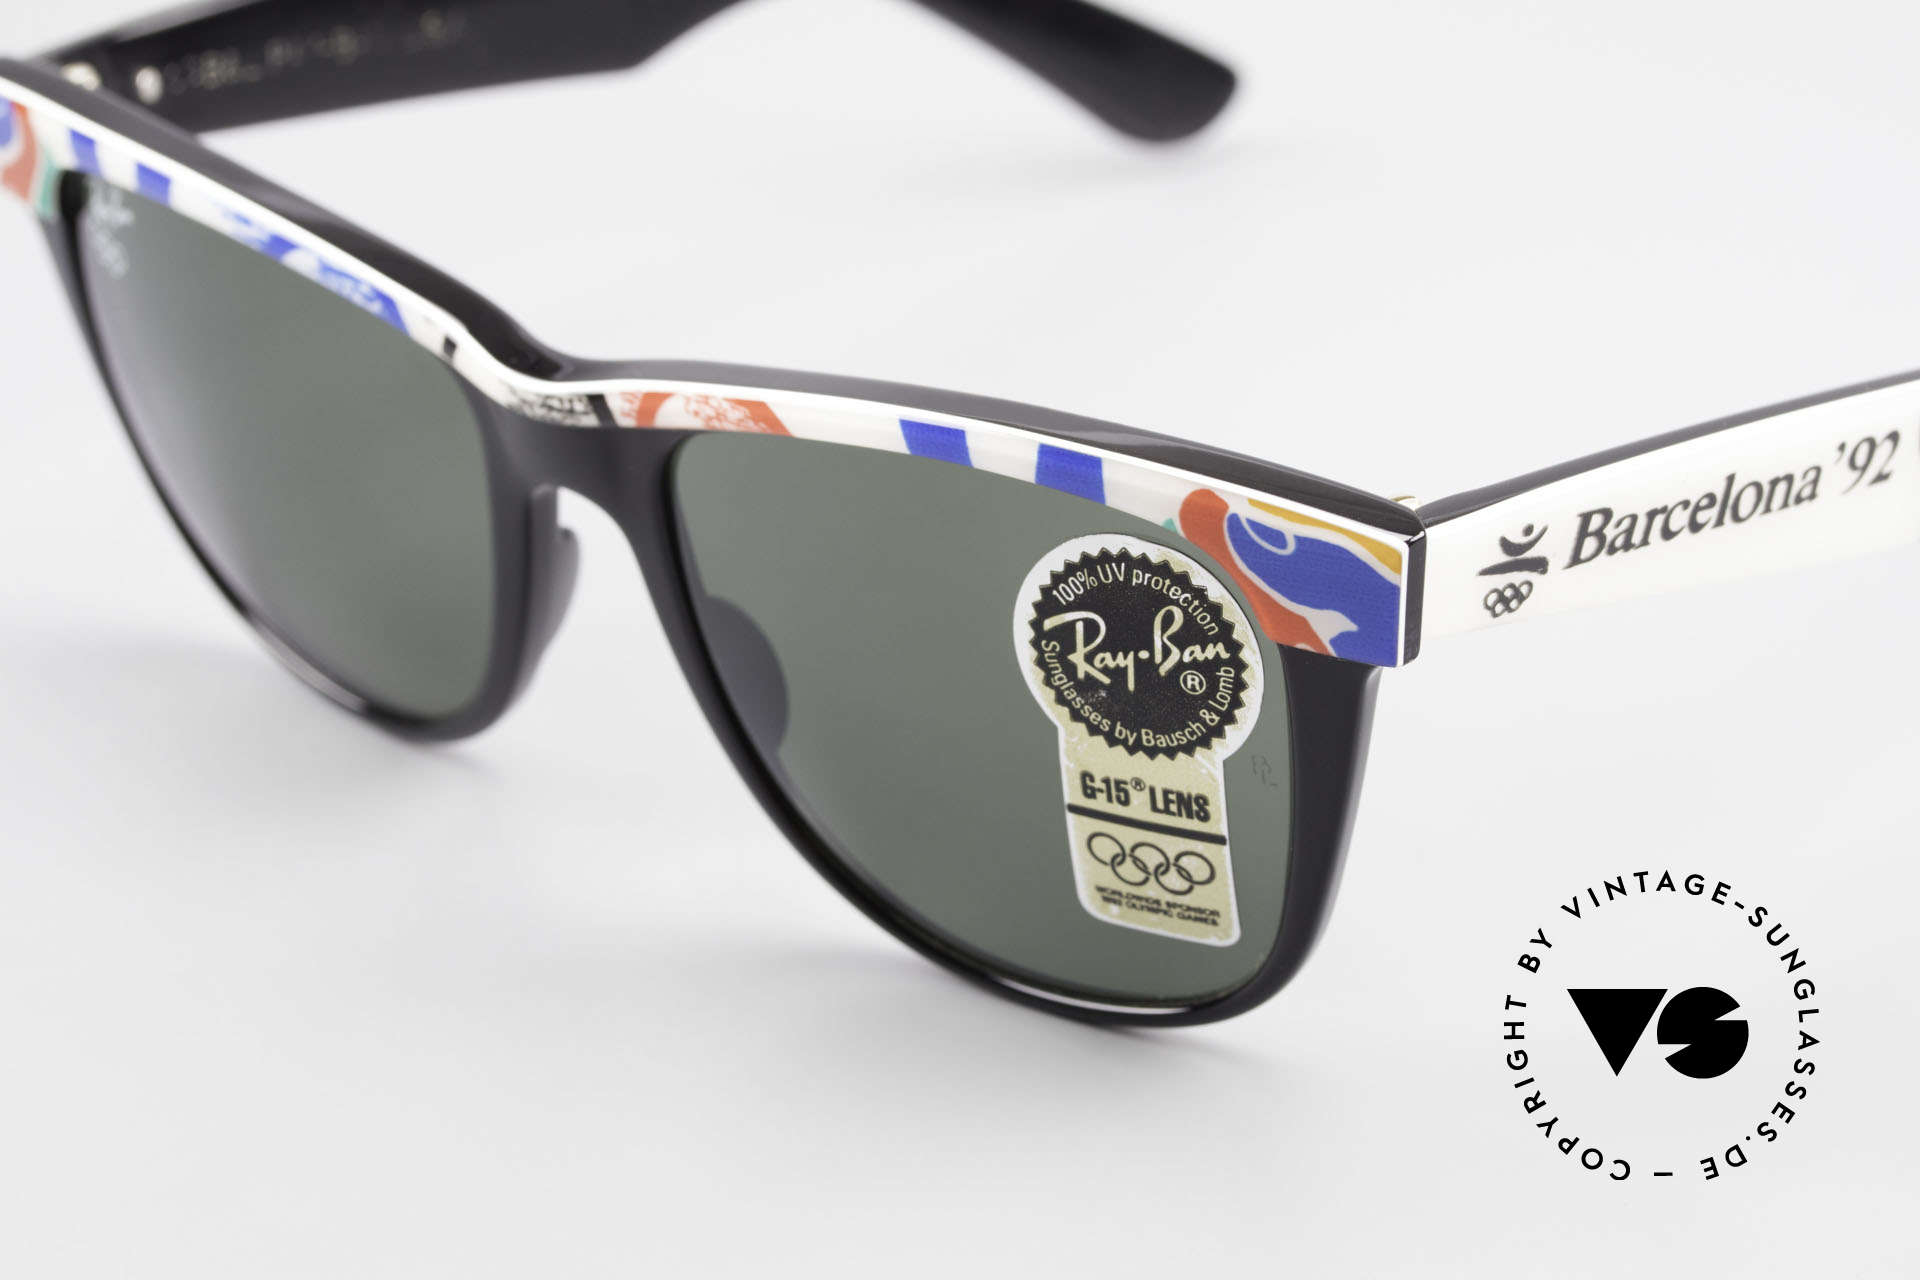 Ray Ban Wayfarer II Olympic Games 1992 Barcelona, B&L quality mineral lenses (for 100% UV-protection), Made for Men and Women